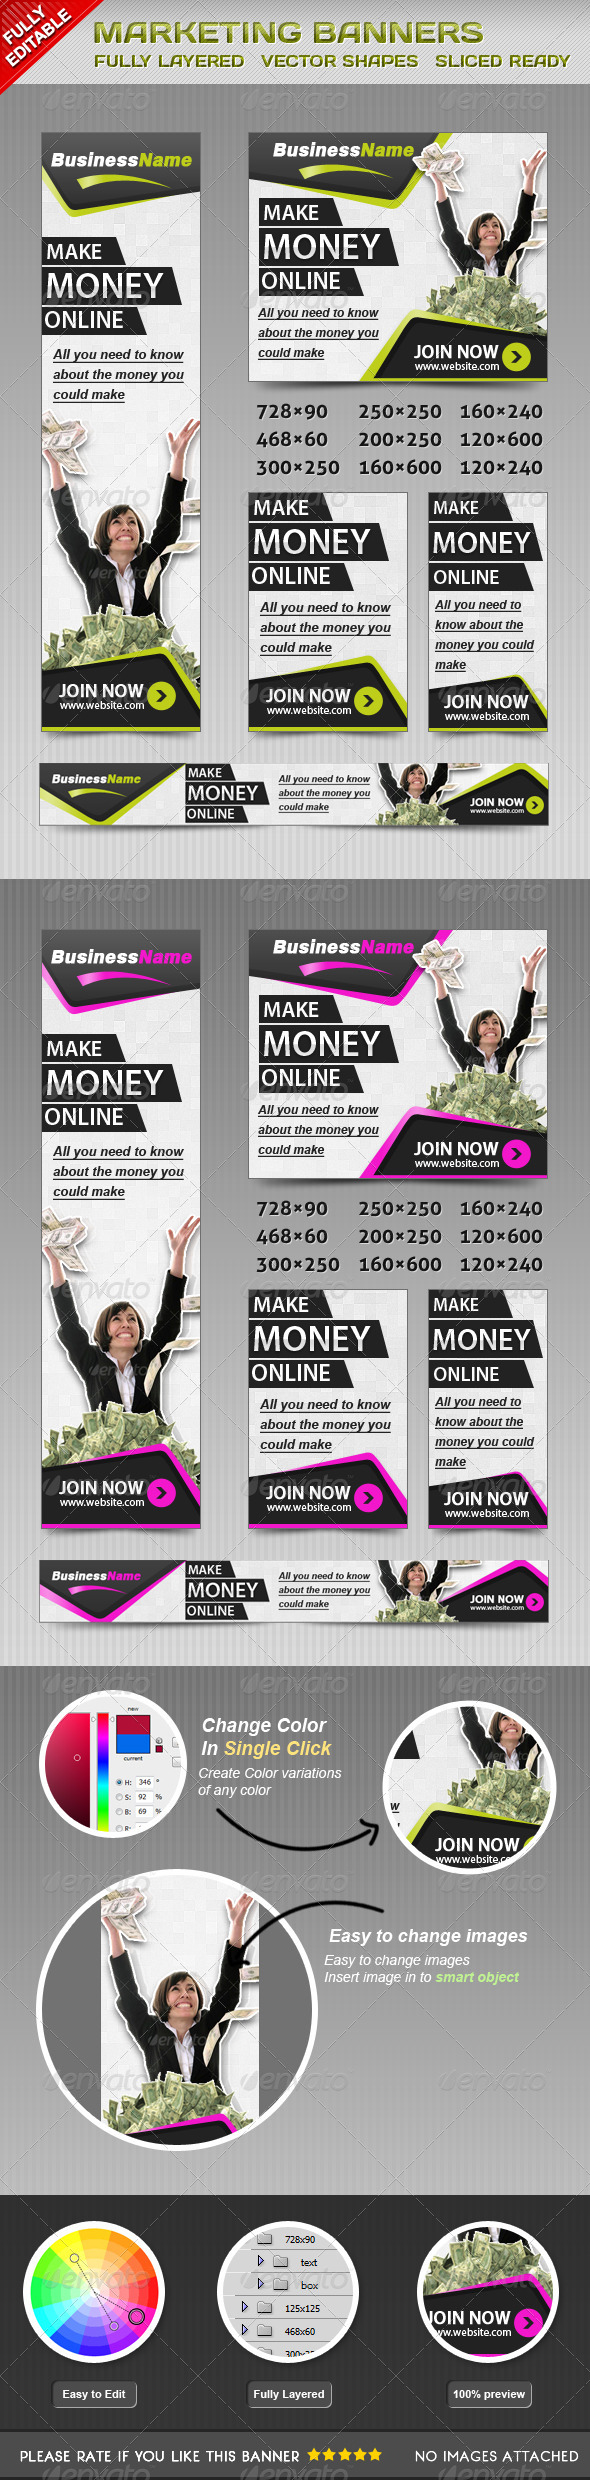 GraphicRiver Marketing Banners 4584147